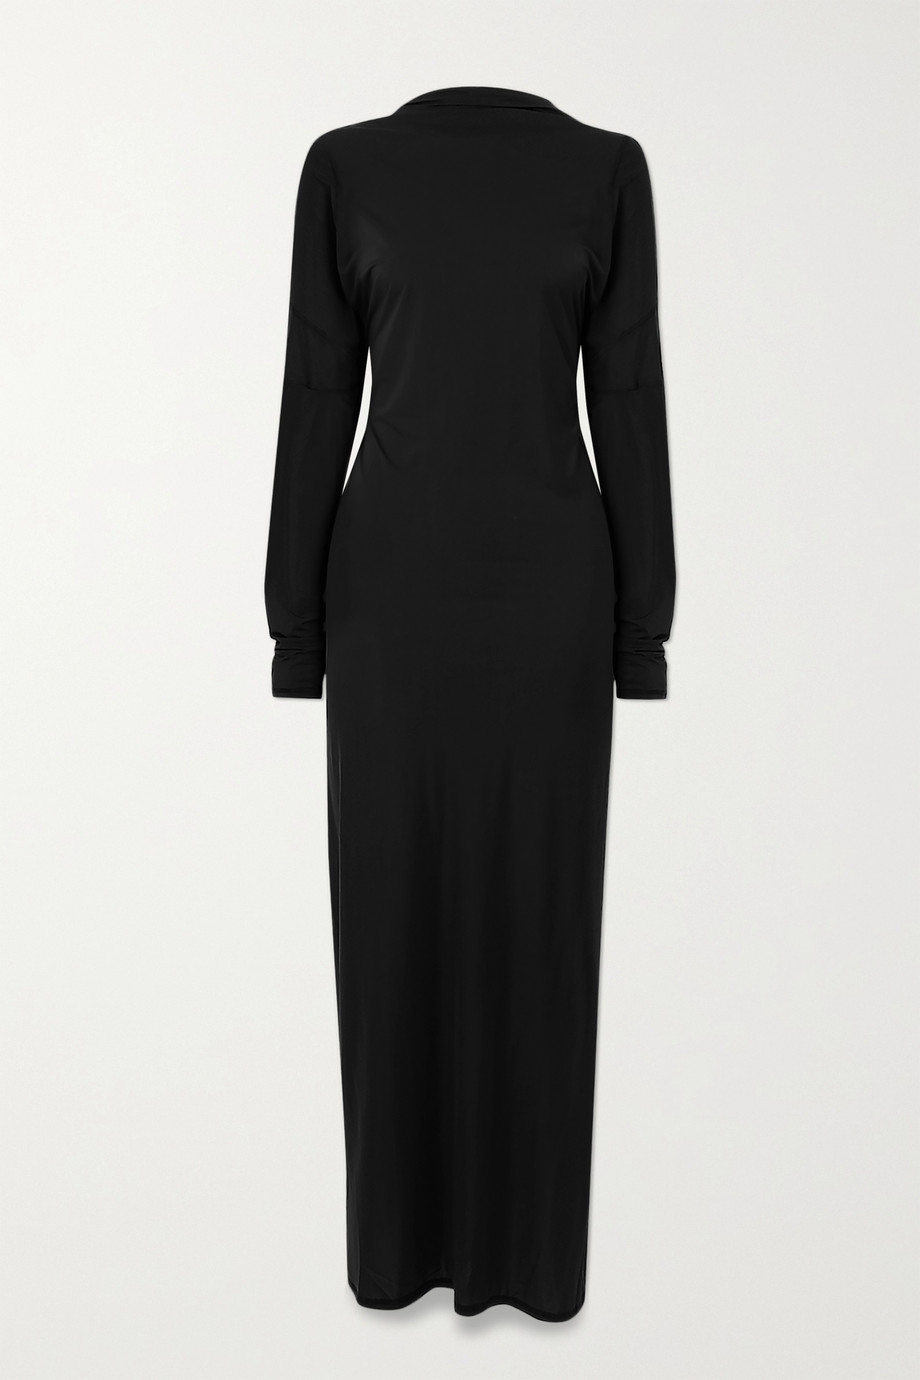 IOANNES Open-back paneled stretch-jersey maxi dress